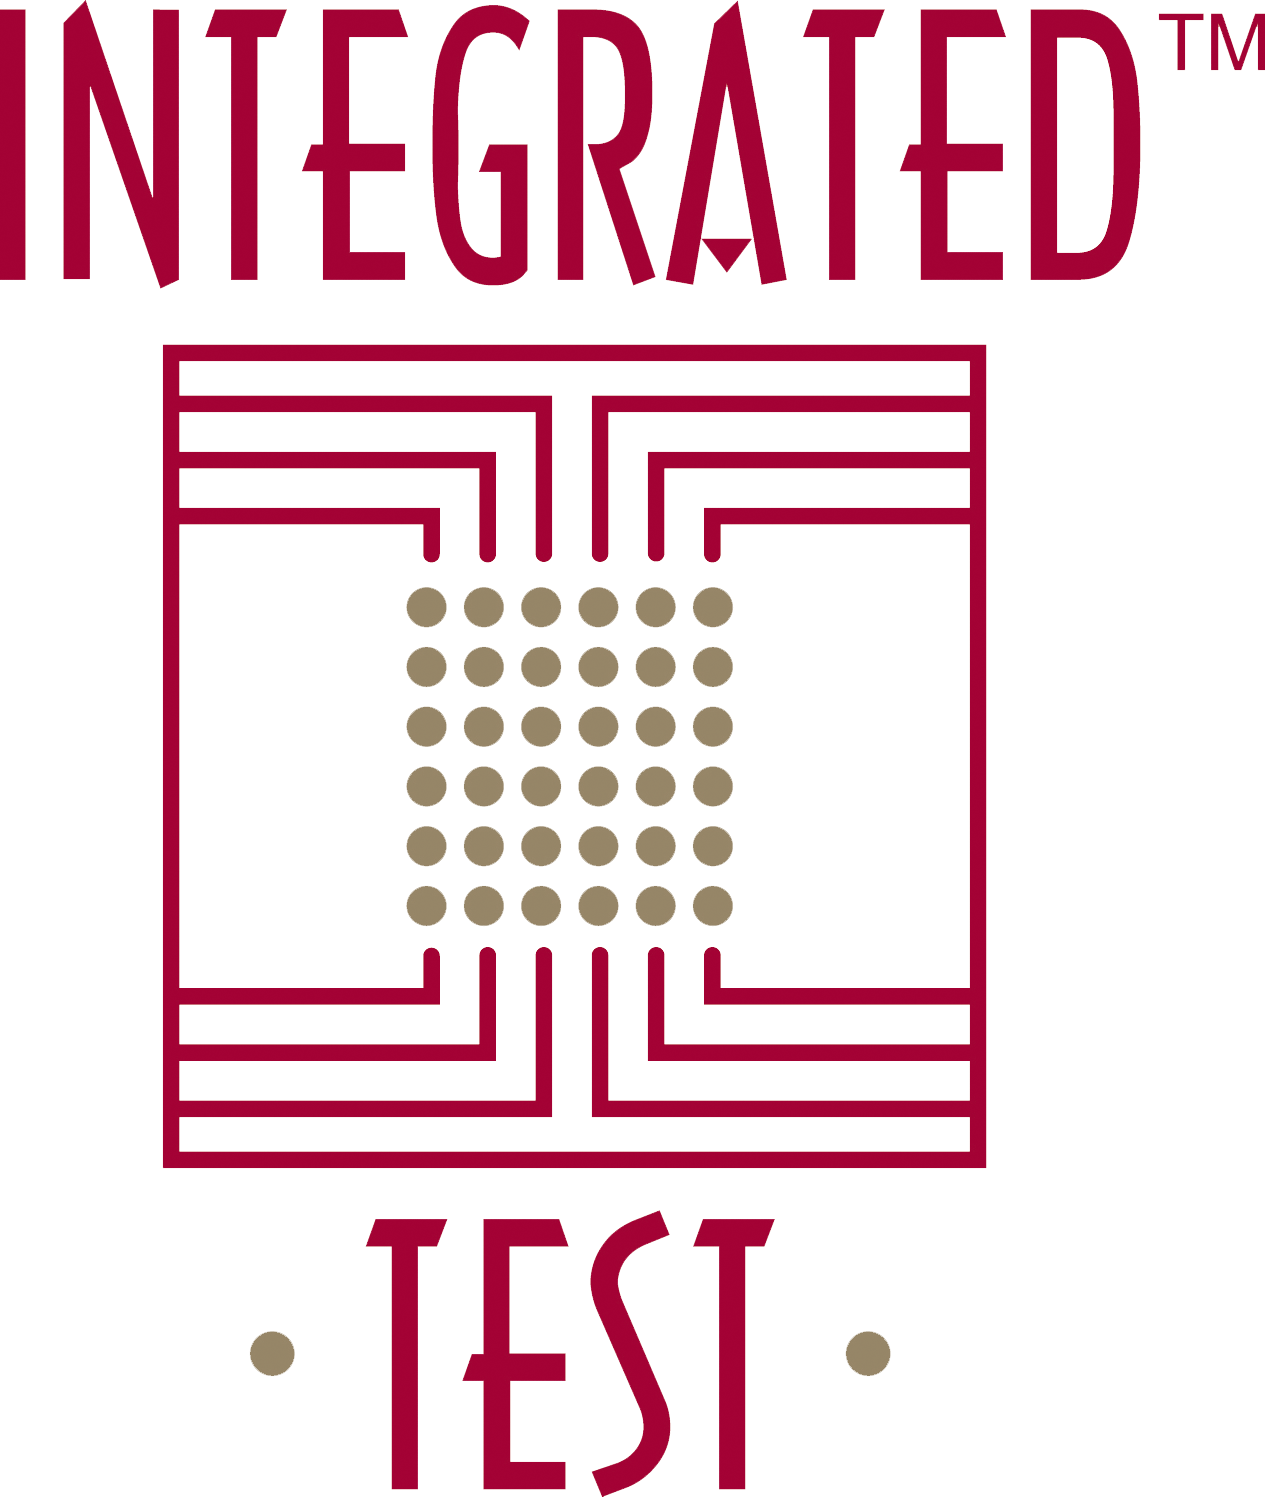 Integrated Test